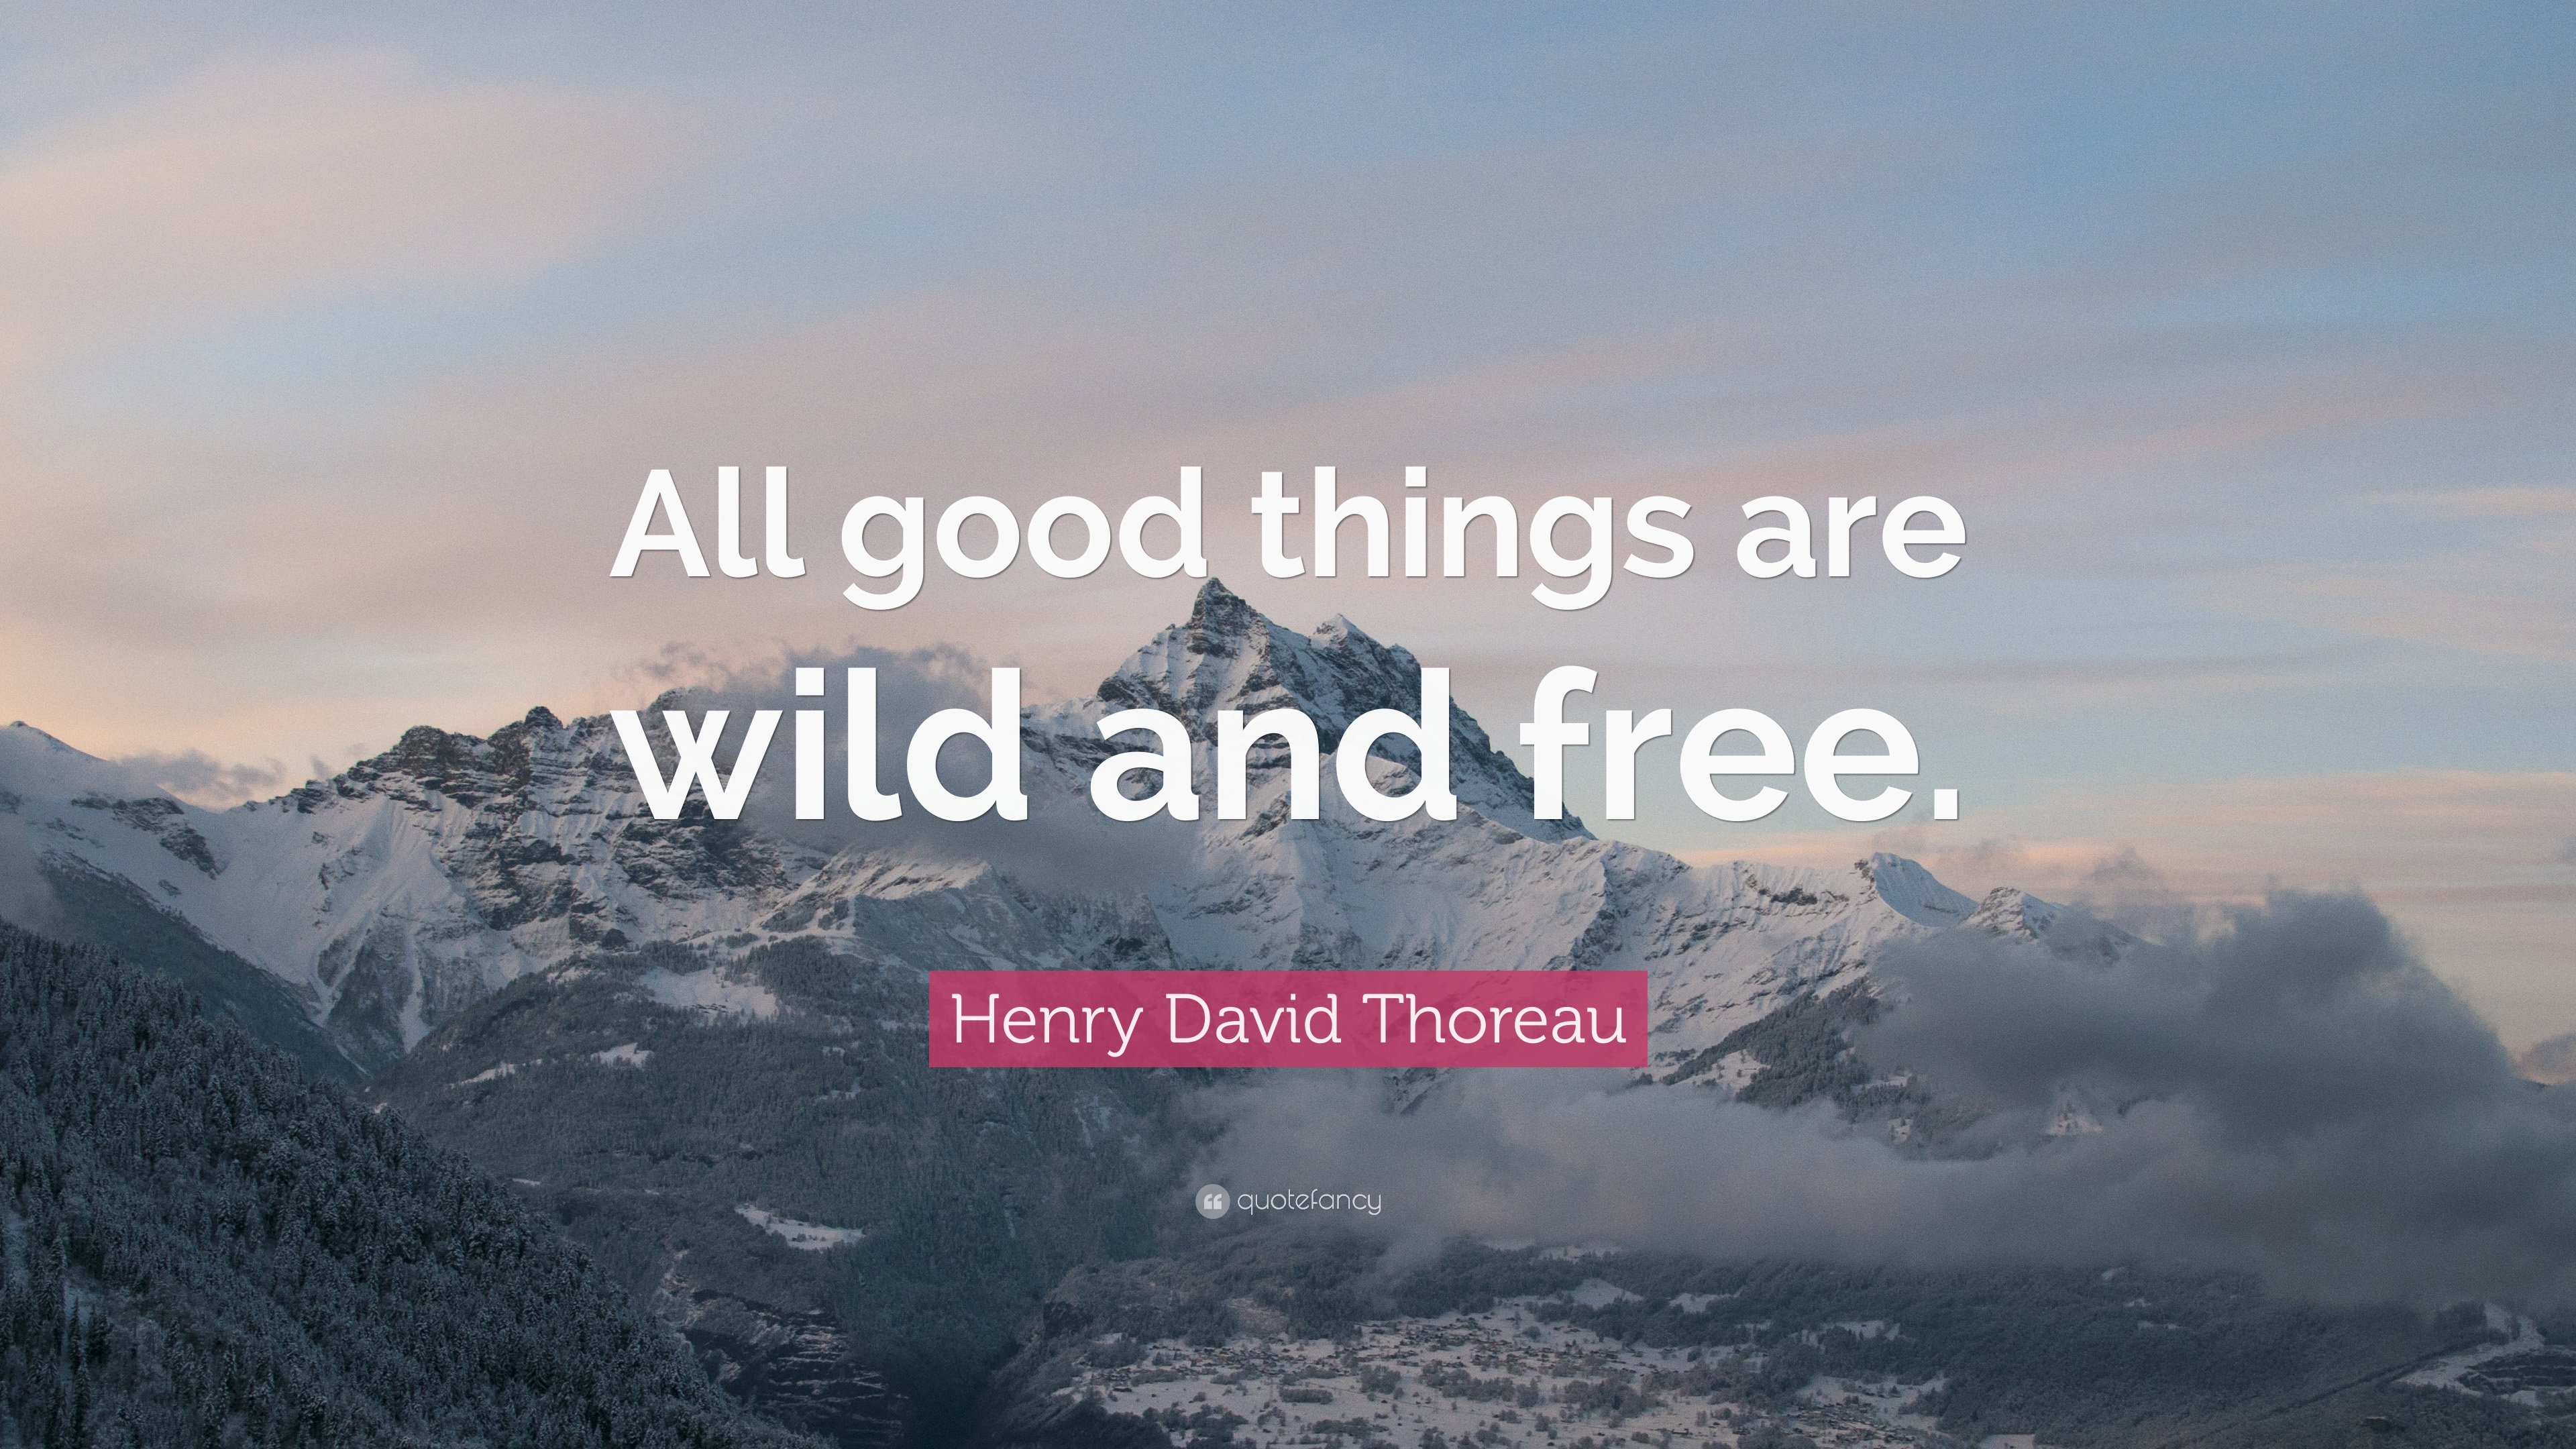 Motivational Quotes On Attitude Wallpapers Henry David Thoreau Quote All Good Things Are Wild And